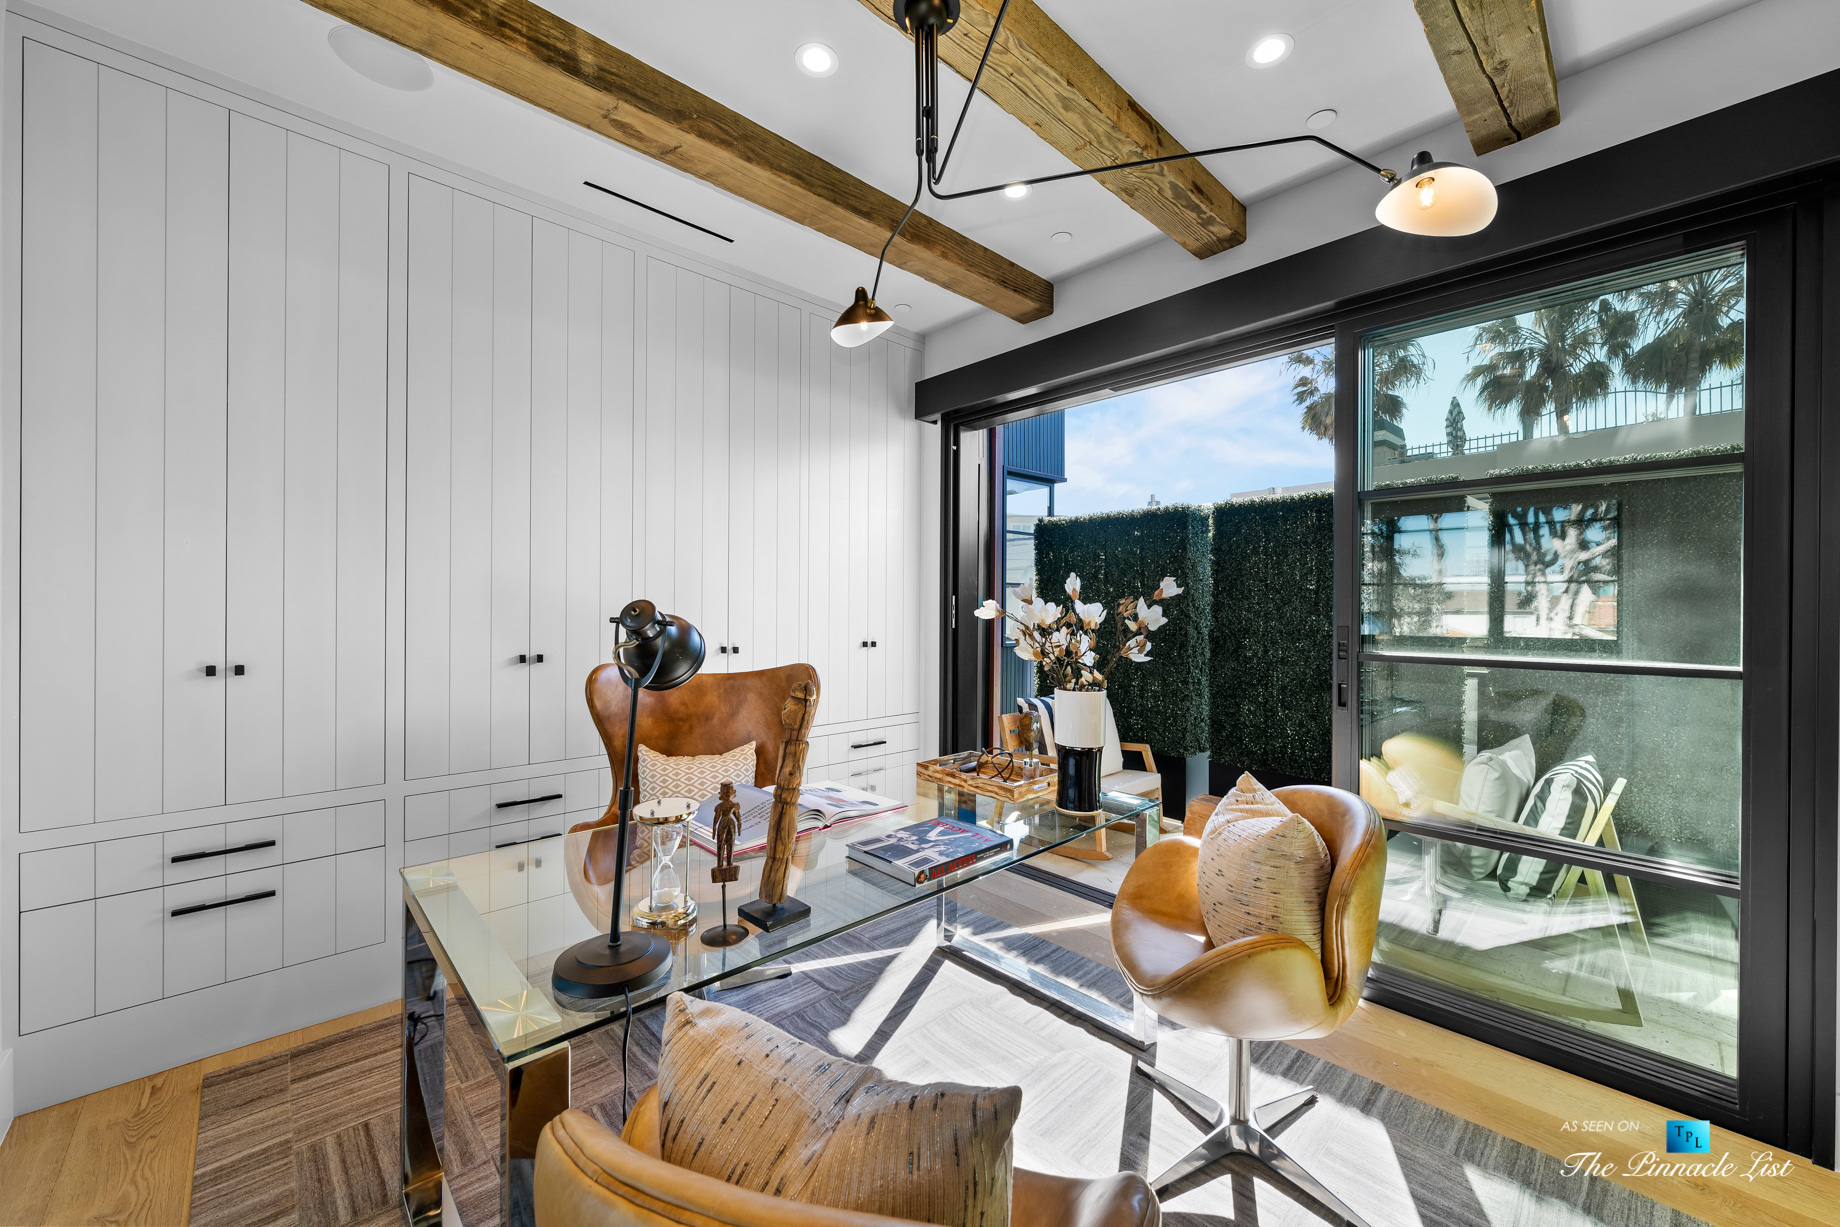 508 The Strand, Manhattan Beach, CA, USA – Spectacular Lower Level Office – Luxury Real Estate – Oceanfront Home